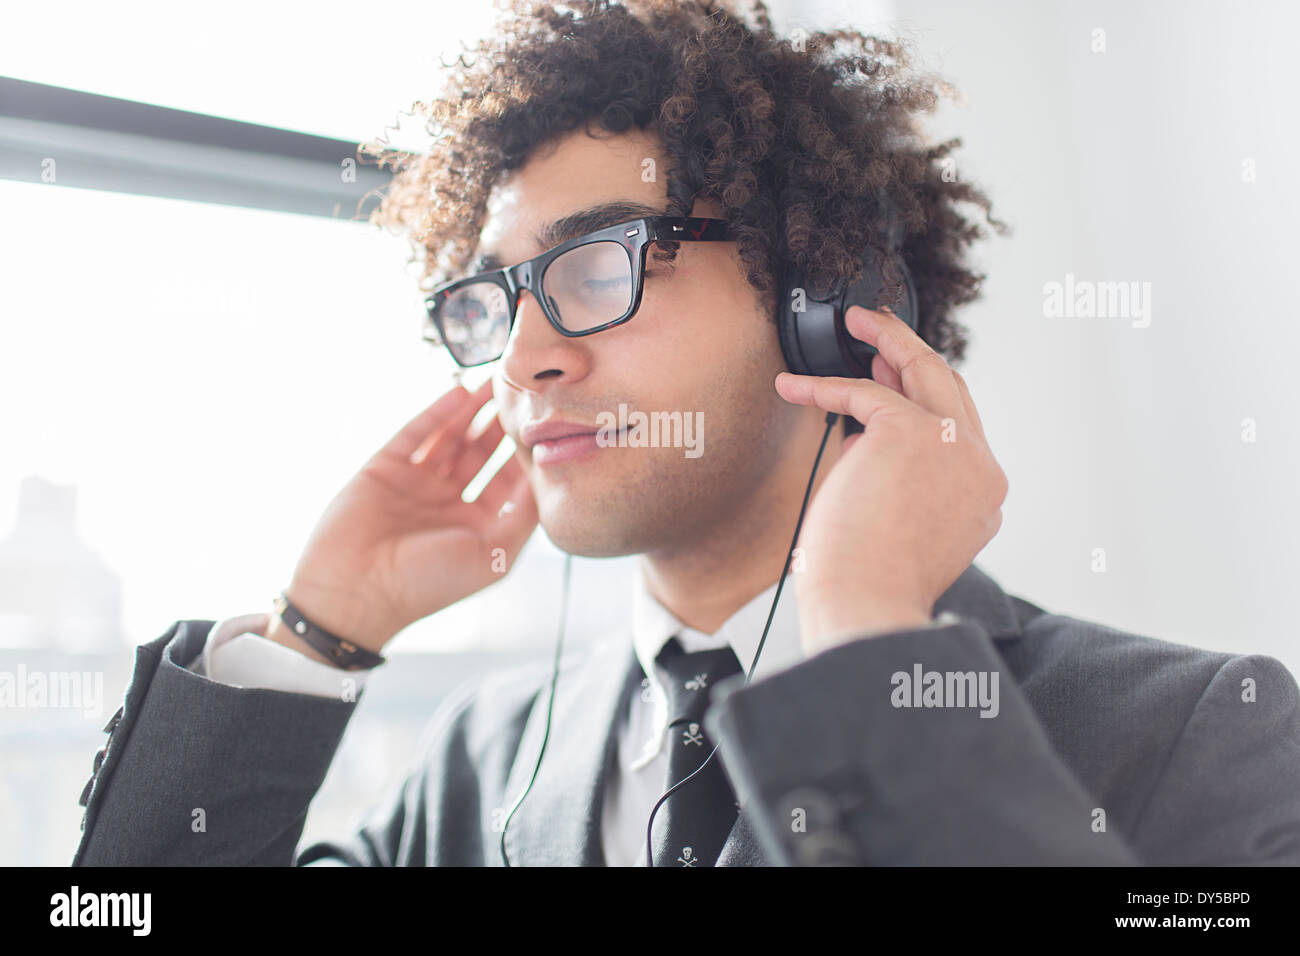 Young man wearing headphones Photo Stock